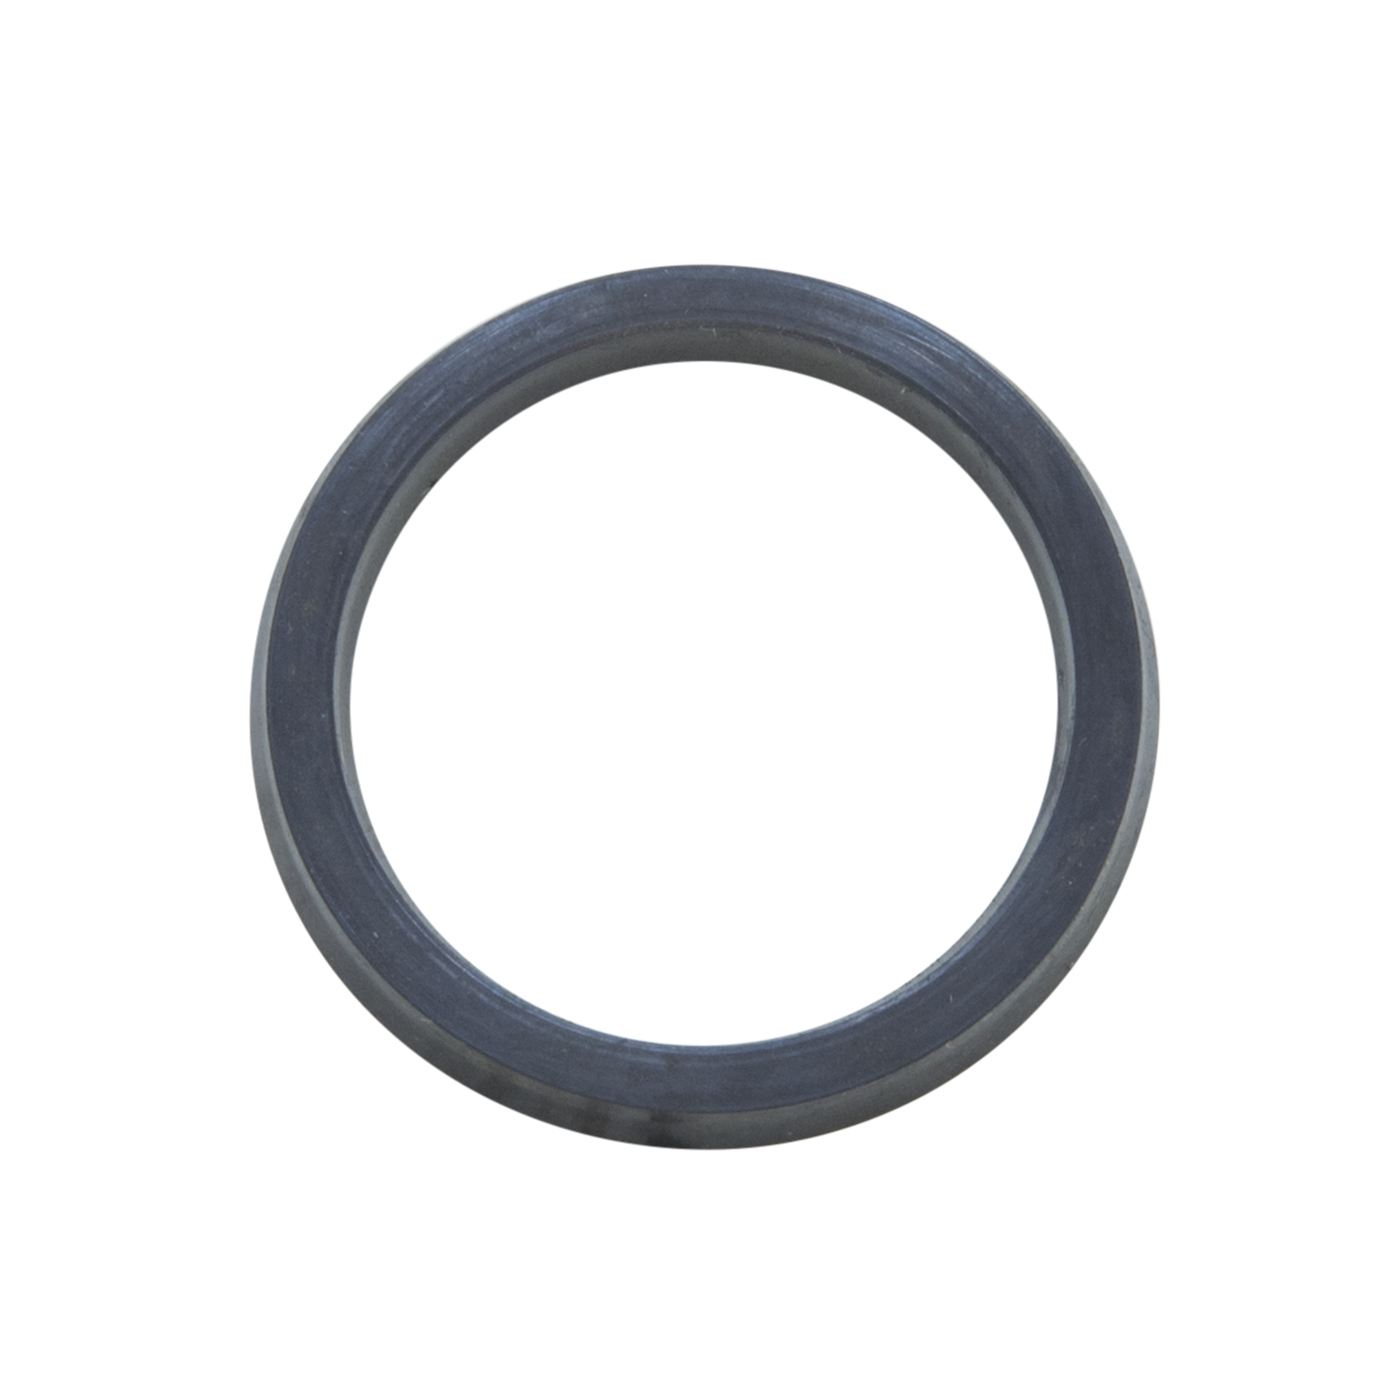 YSPSP-009 - Spindle bearing seal for Dana 30 & 44